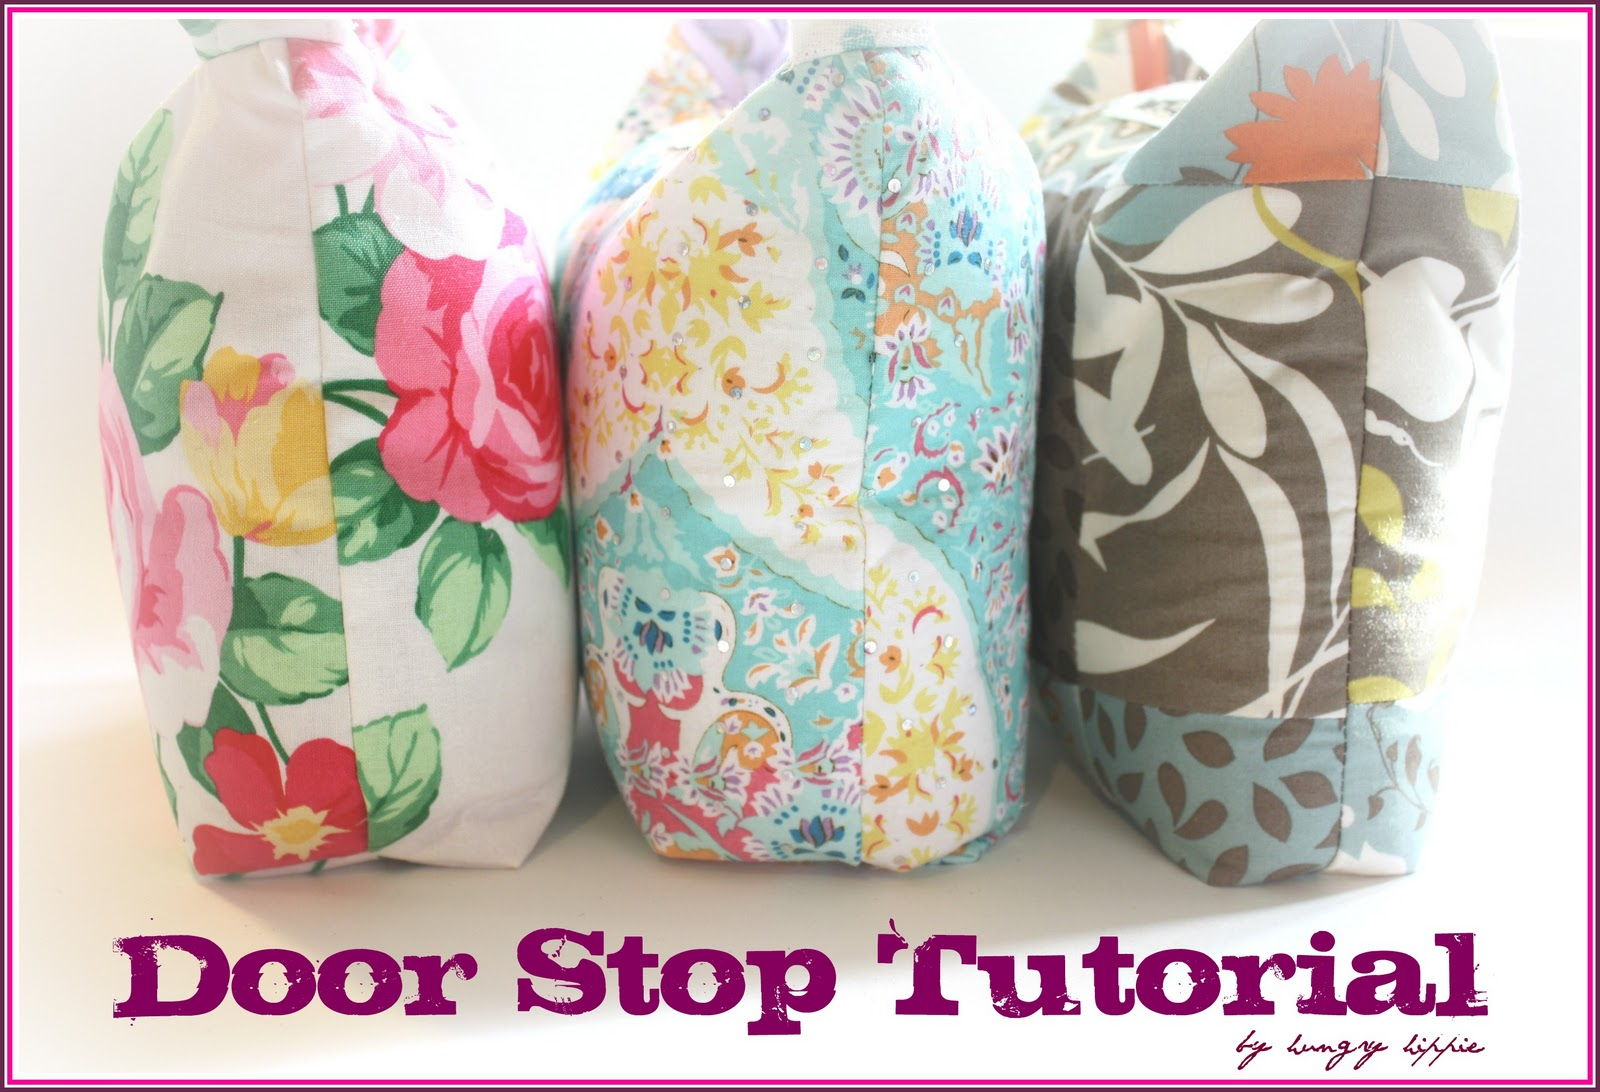 Hungryhippie Sews Sewing Tutorial Make A Door Stop With